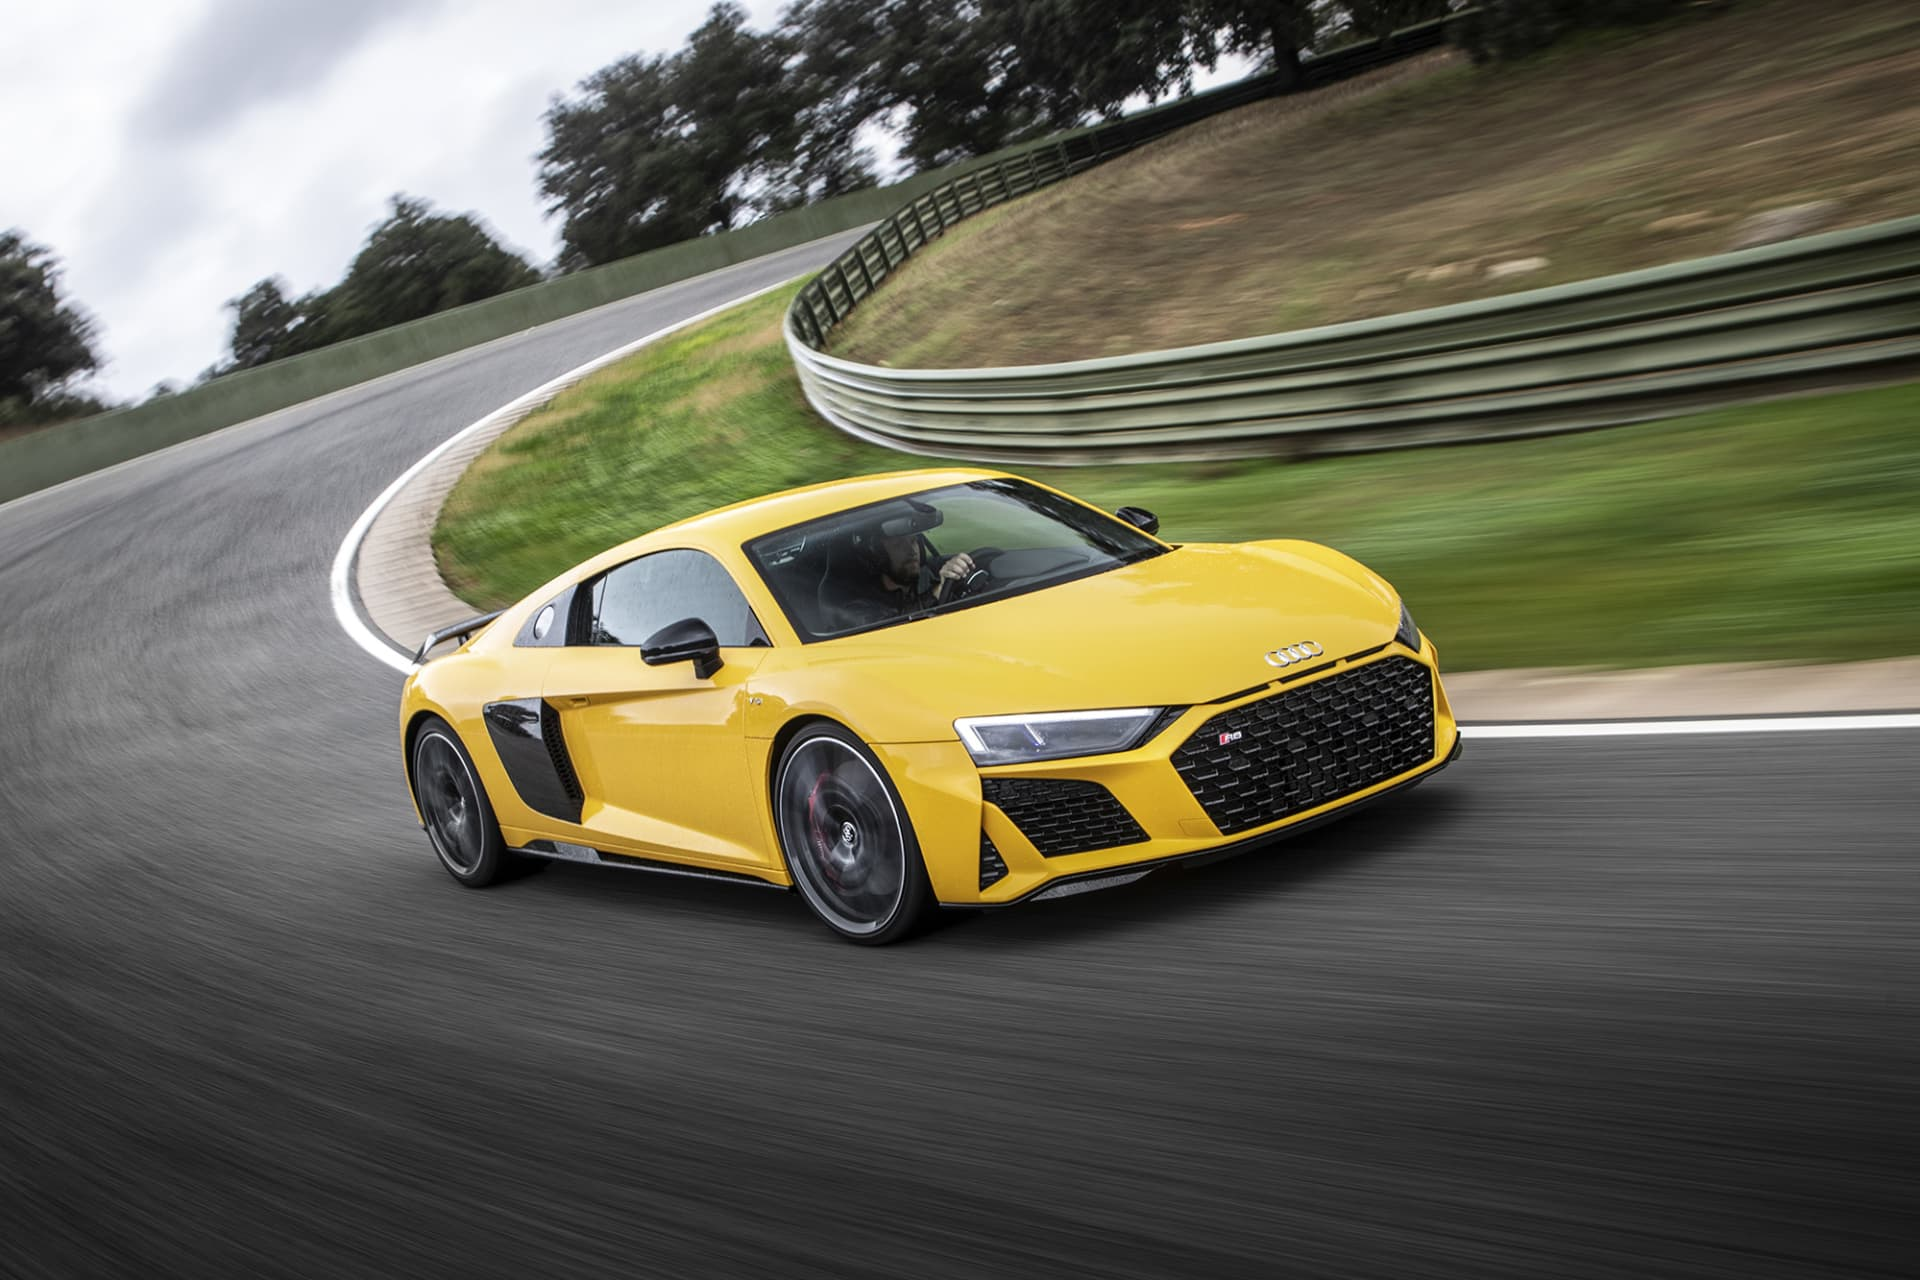 Audi R8 is definitely a sports car making my pulse go up. I personally prefer the Spyder version where you get full access to the soundtrack of the lovely V10 engine. (photo: Ingo Barenschee).